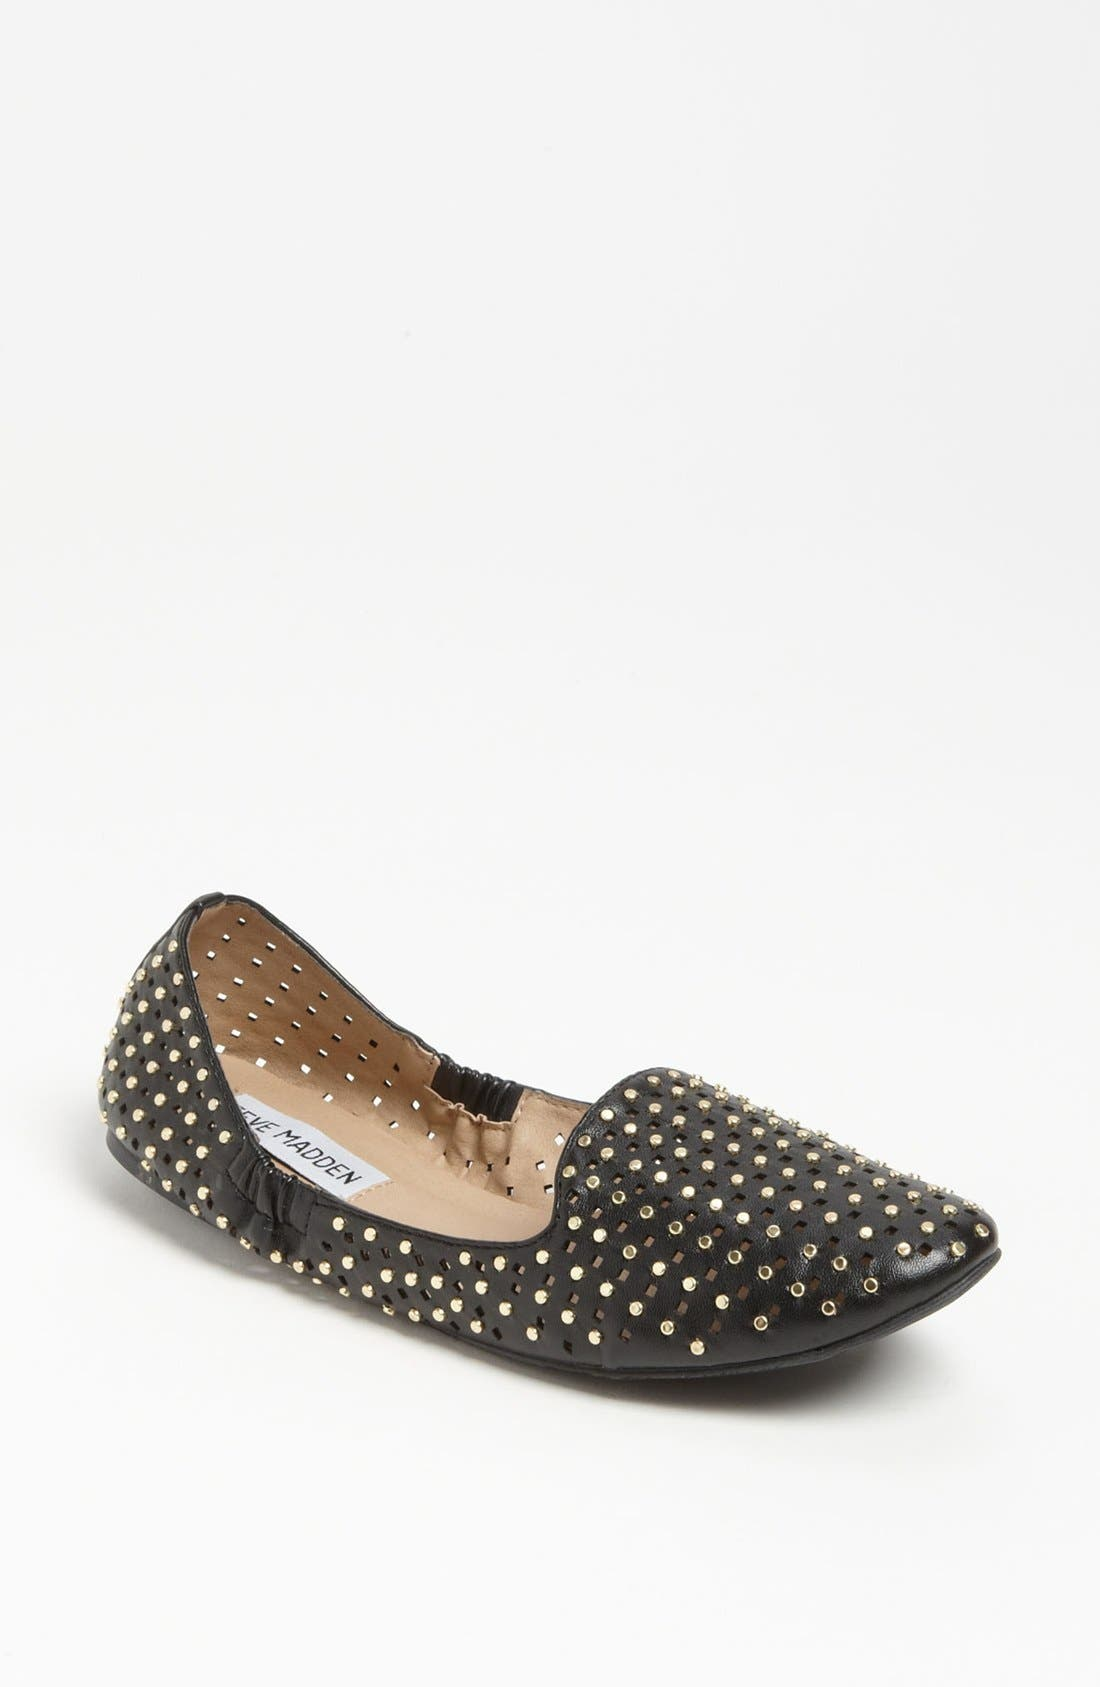 Alternate Image 1 Selected - Steve Madden 'Pompei' Flat